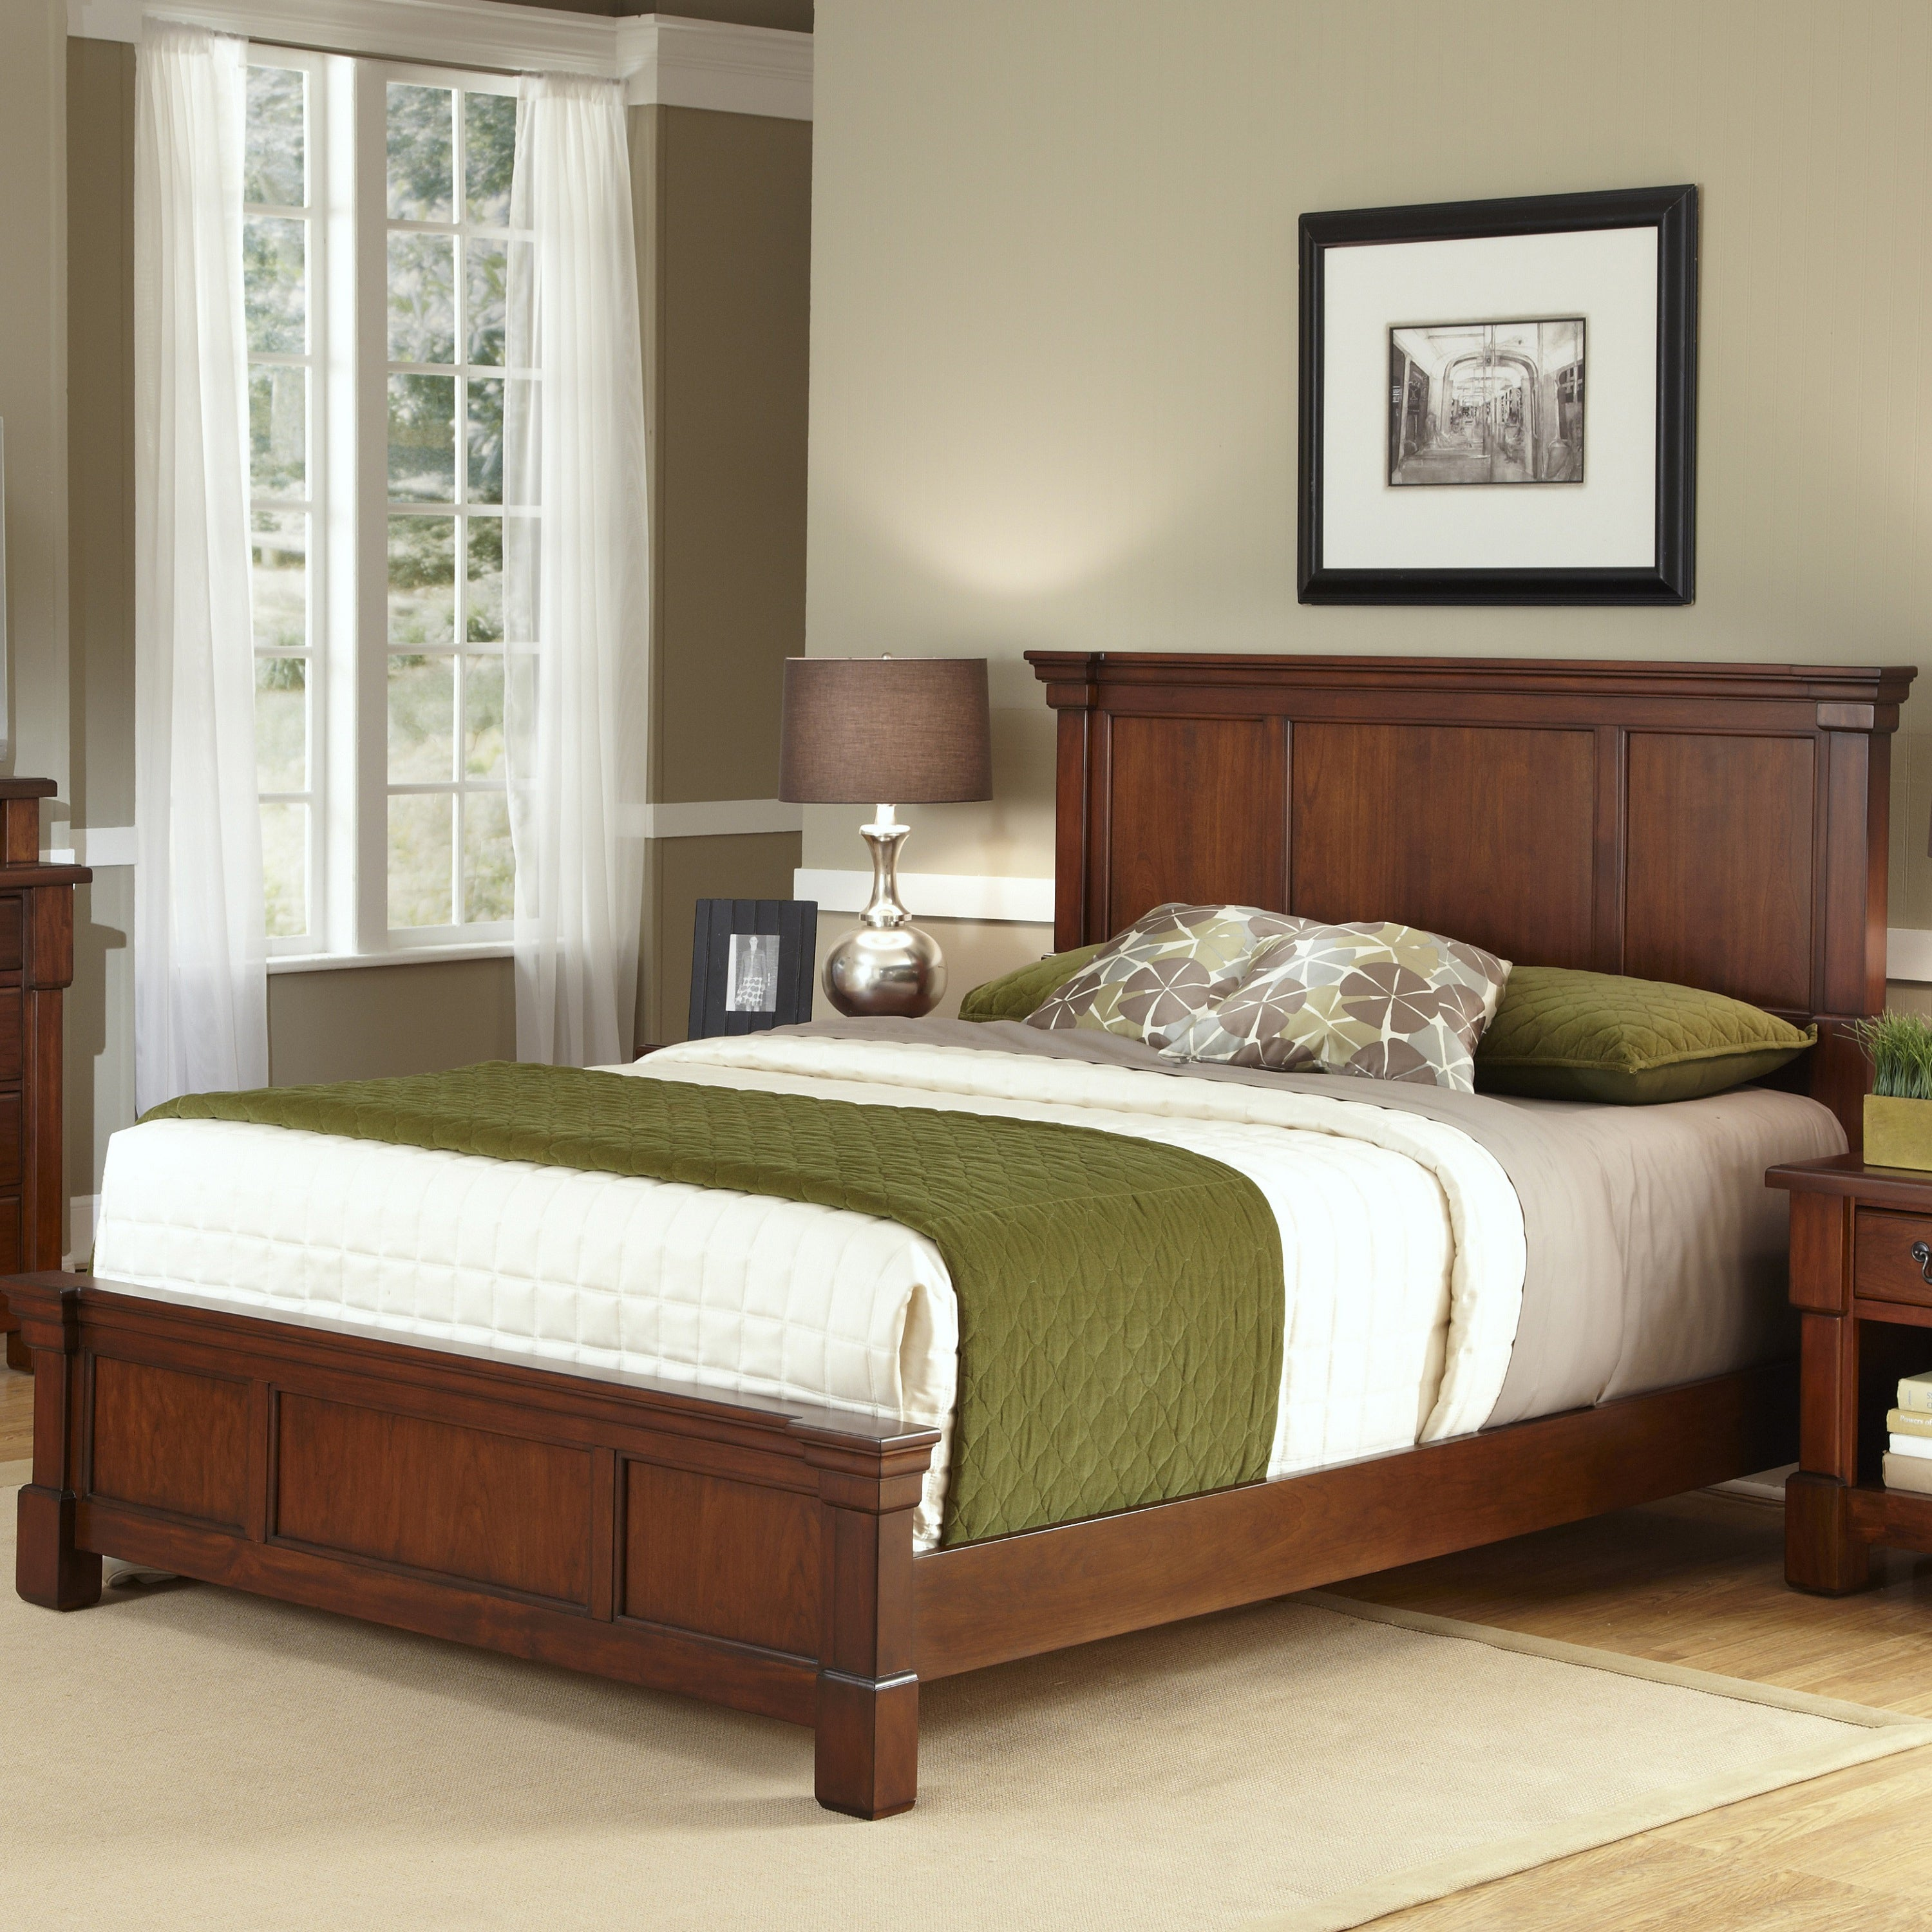 The Aspen Collection Rustic Cherry Queen Bed by Home Styl...